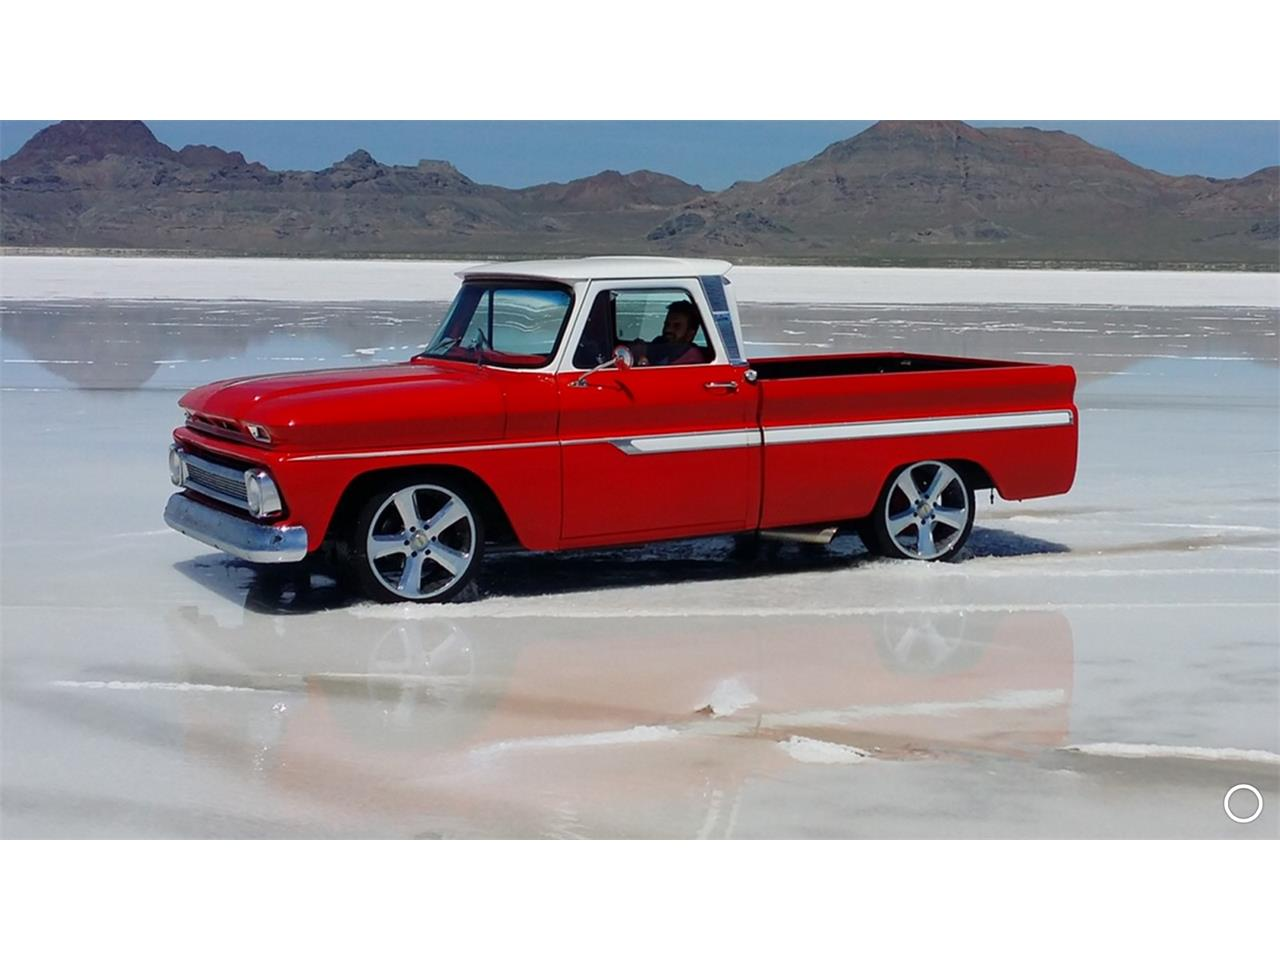 Large Picture of '64 Chevrolet C10 located in Orange California - $39,500.00 Offered by Classic Car Marketing, Inc. - PSEH